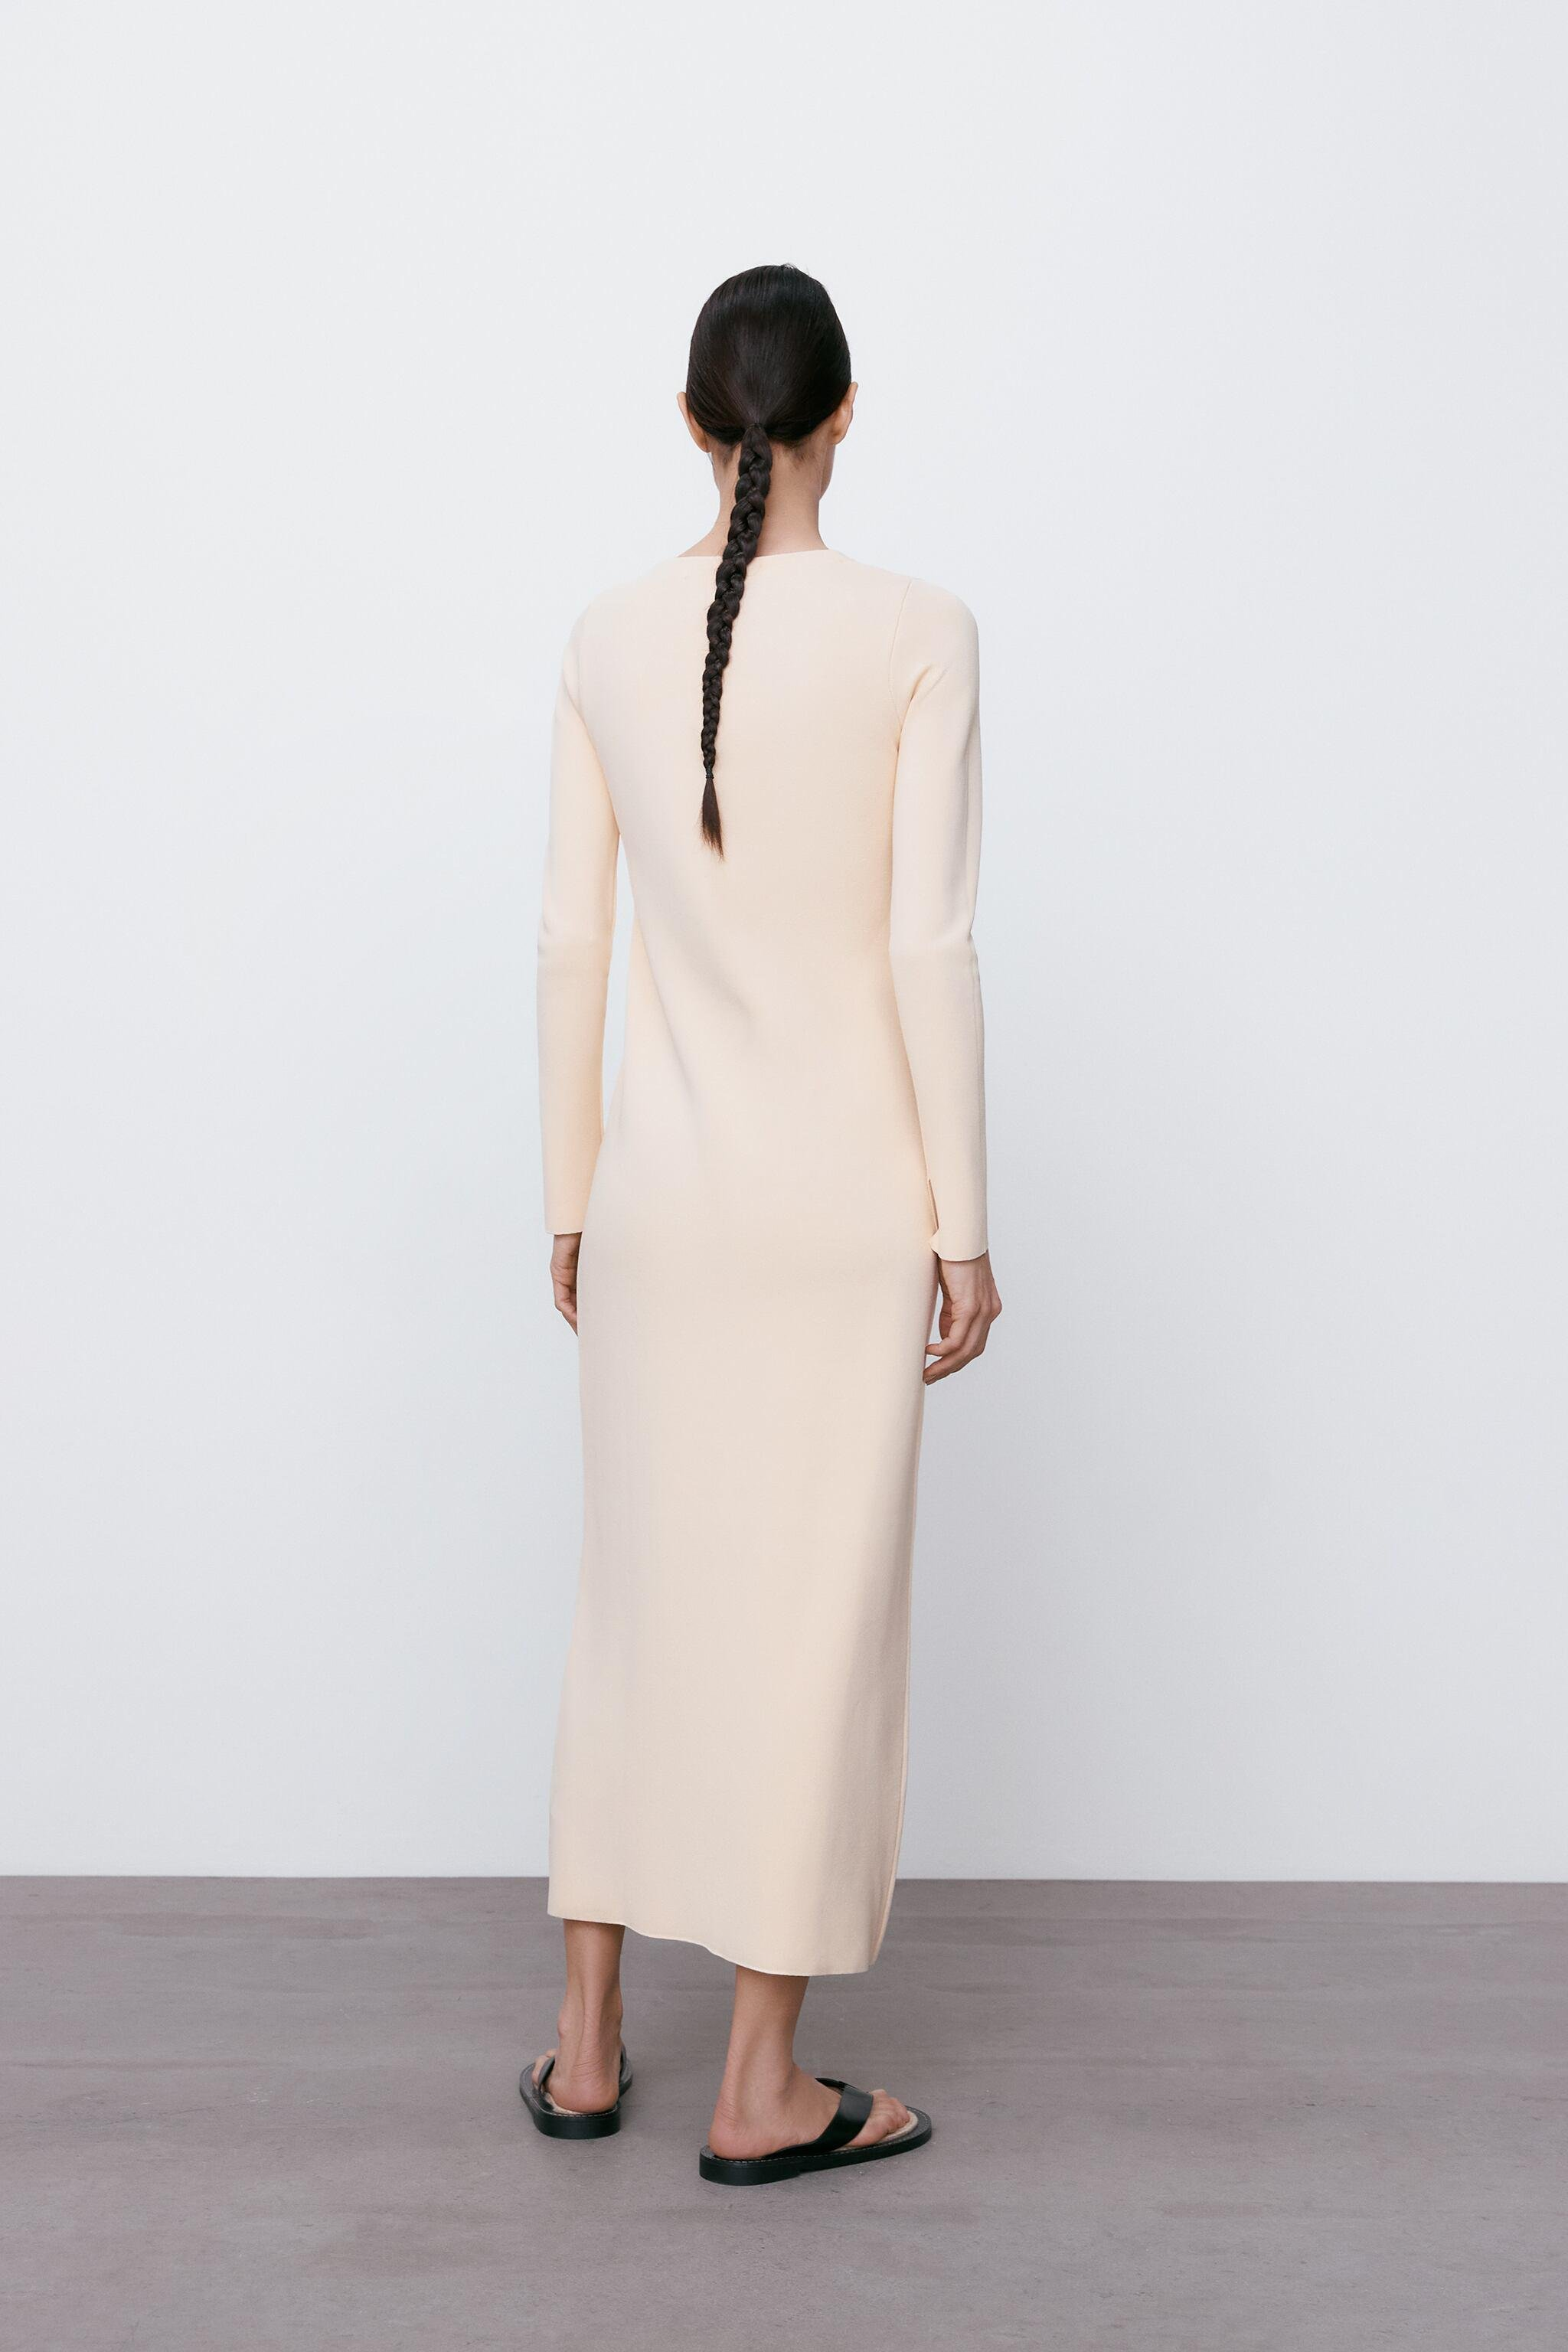 LONG KNIT DRESS LIMITED EDITION 2